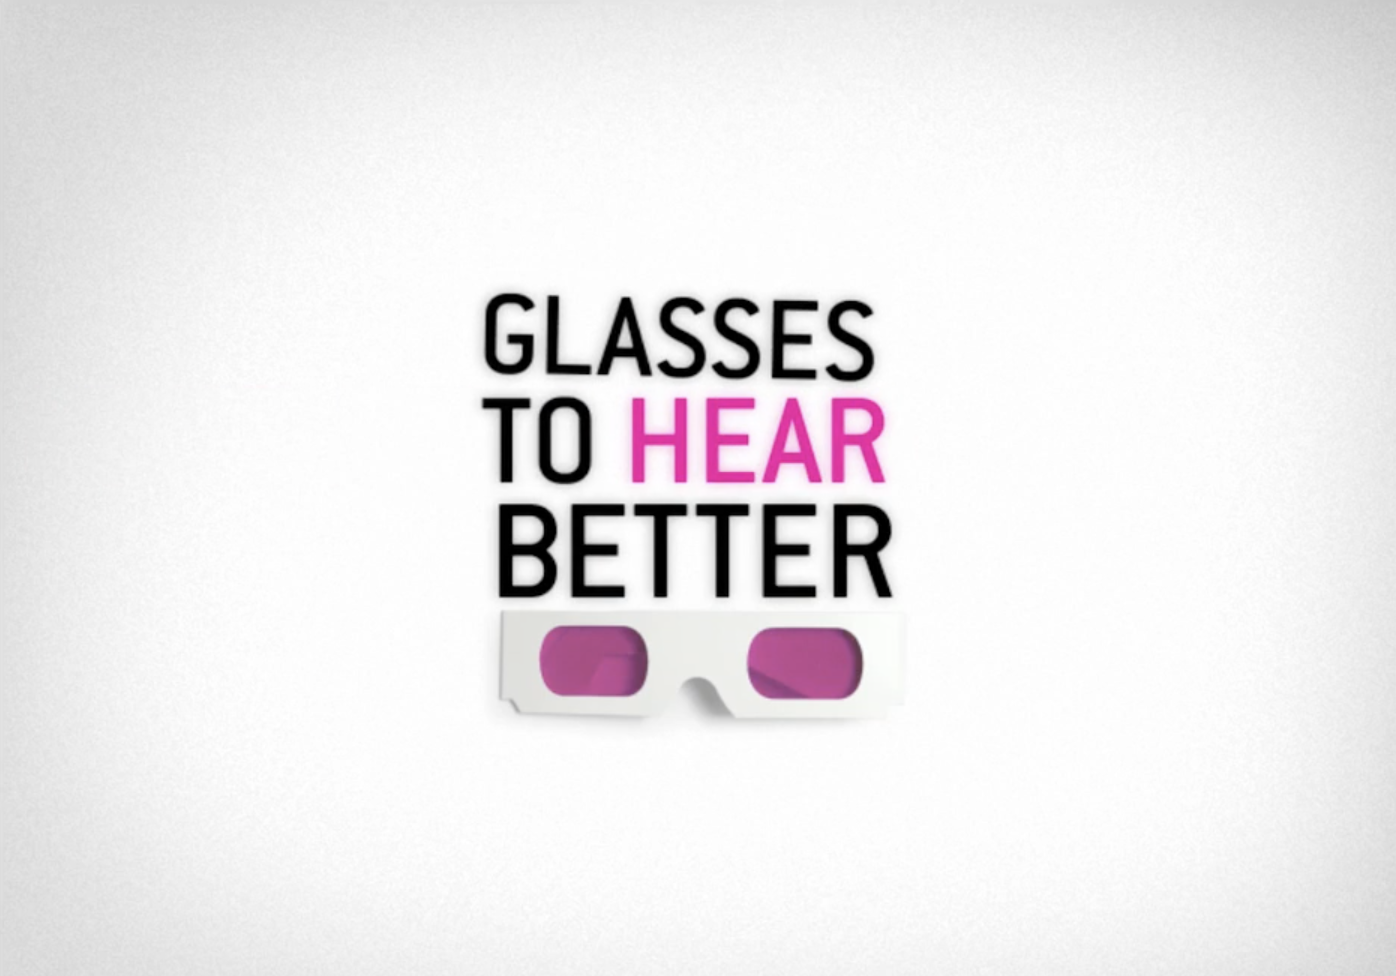 GLASSES TO HEAR BETTER